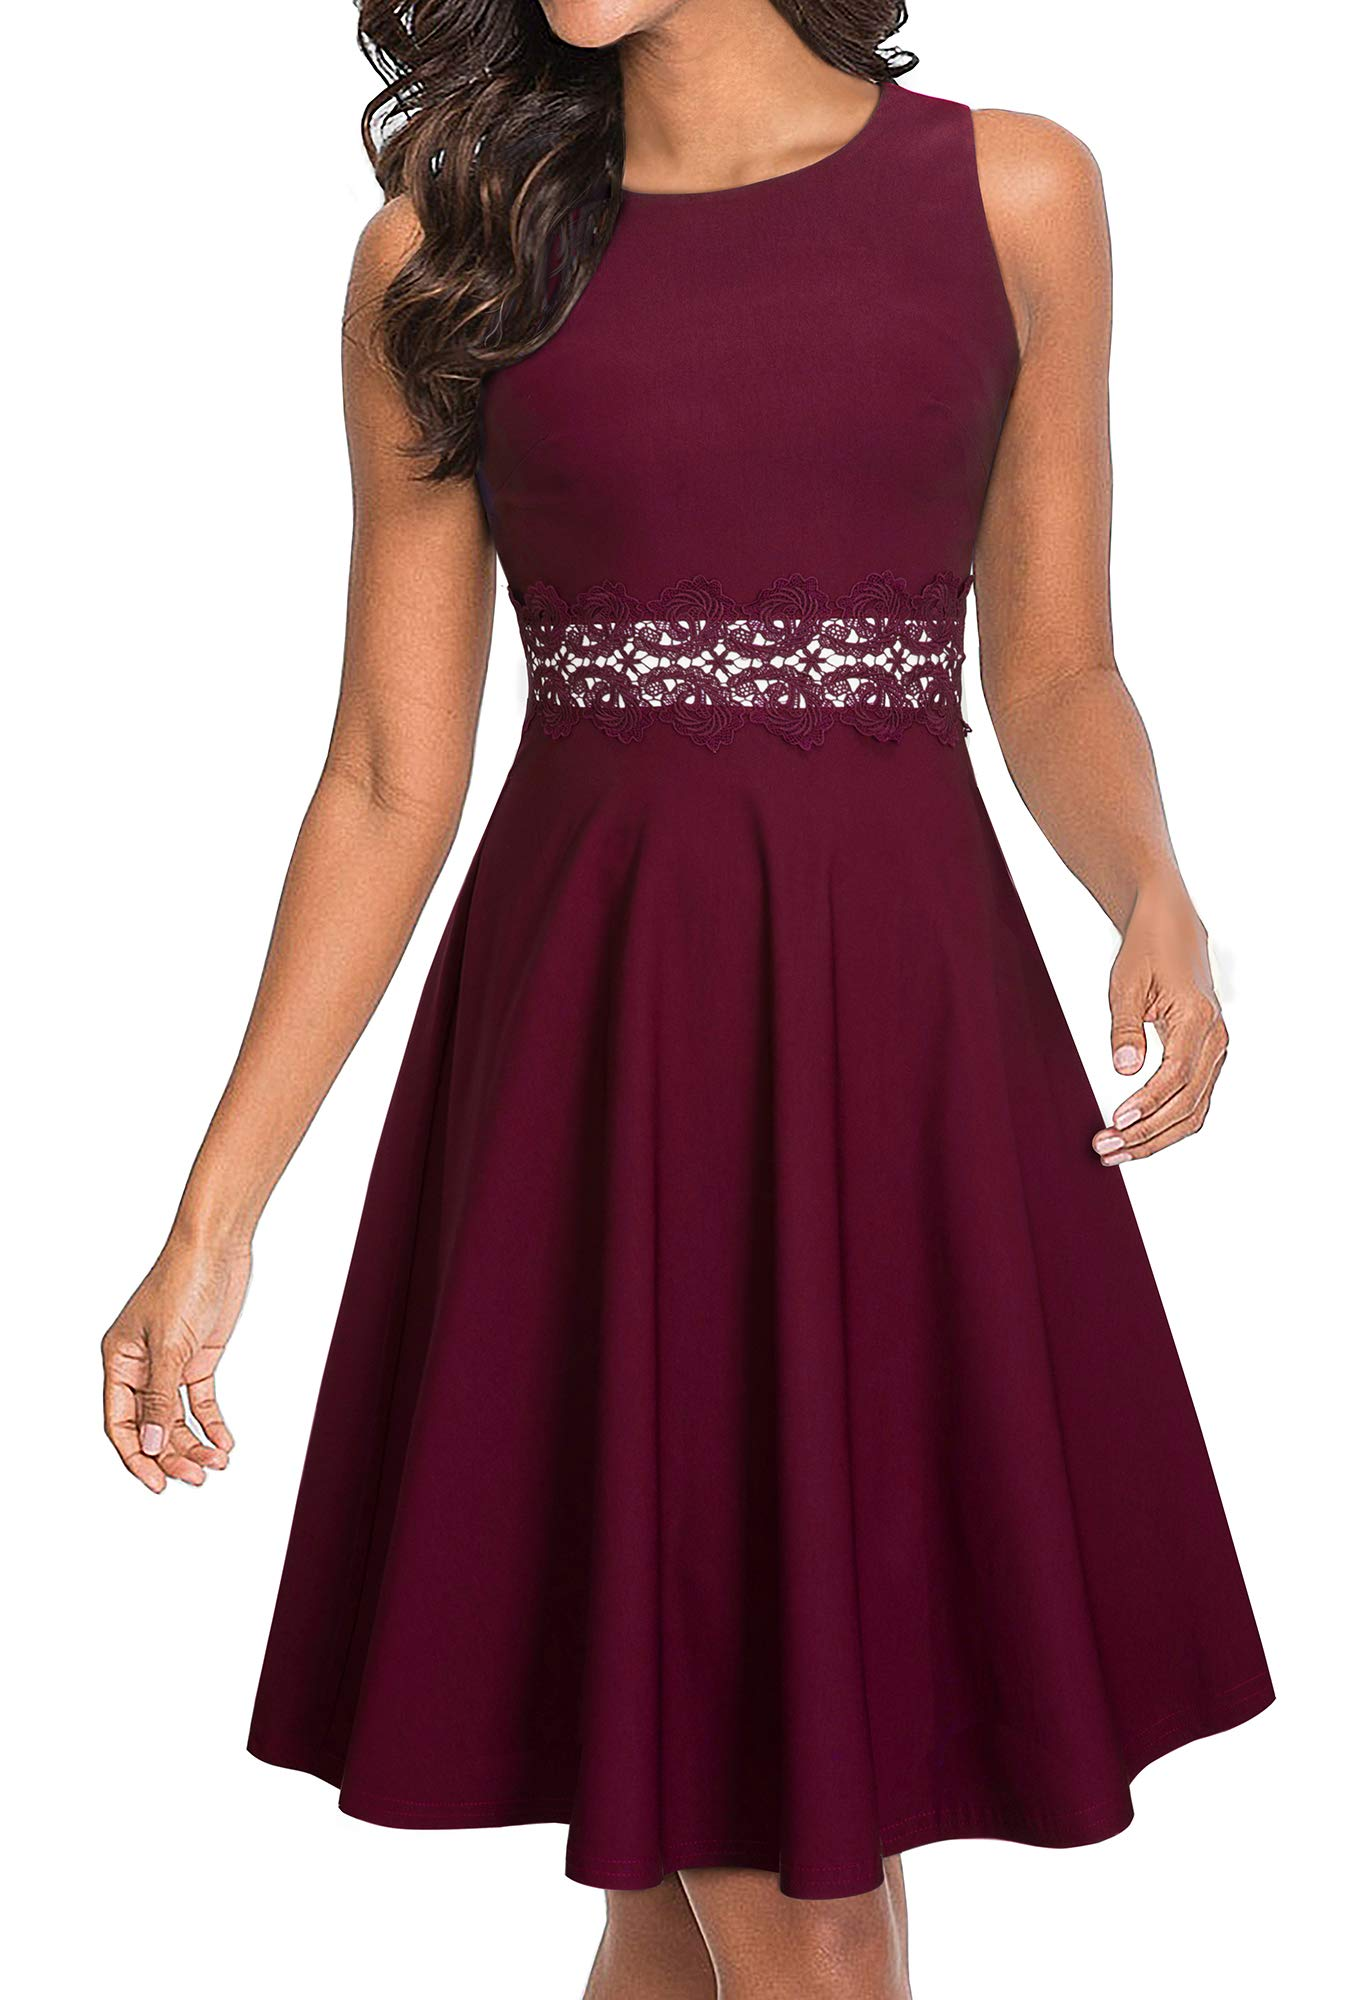 HOMEYEE Women's Sleeveless Cocktail A-Line Embroidery Party Summer Wedding Guest Dress A079 (4, Carmine)